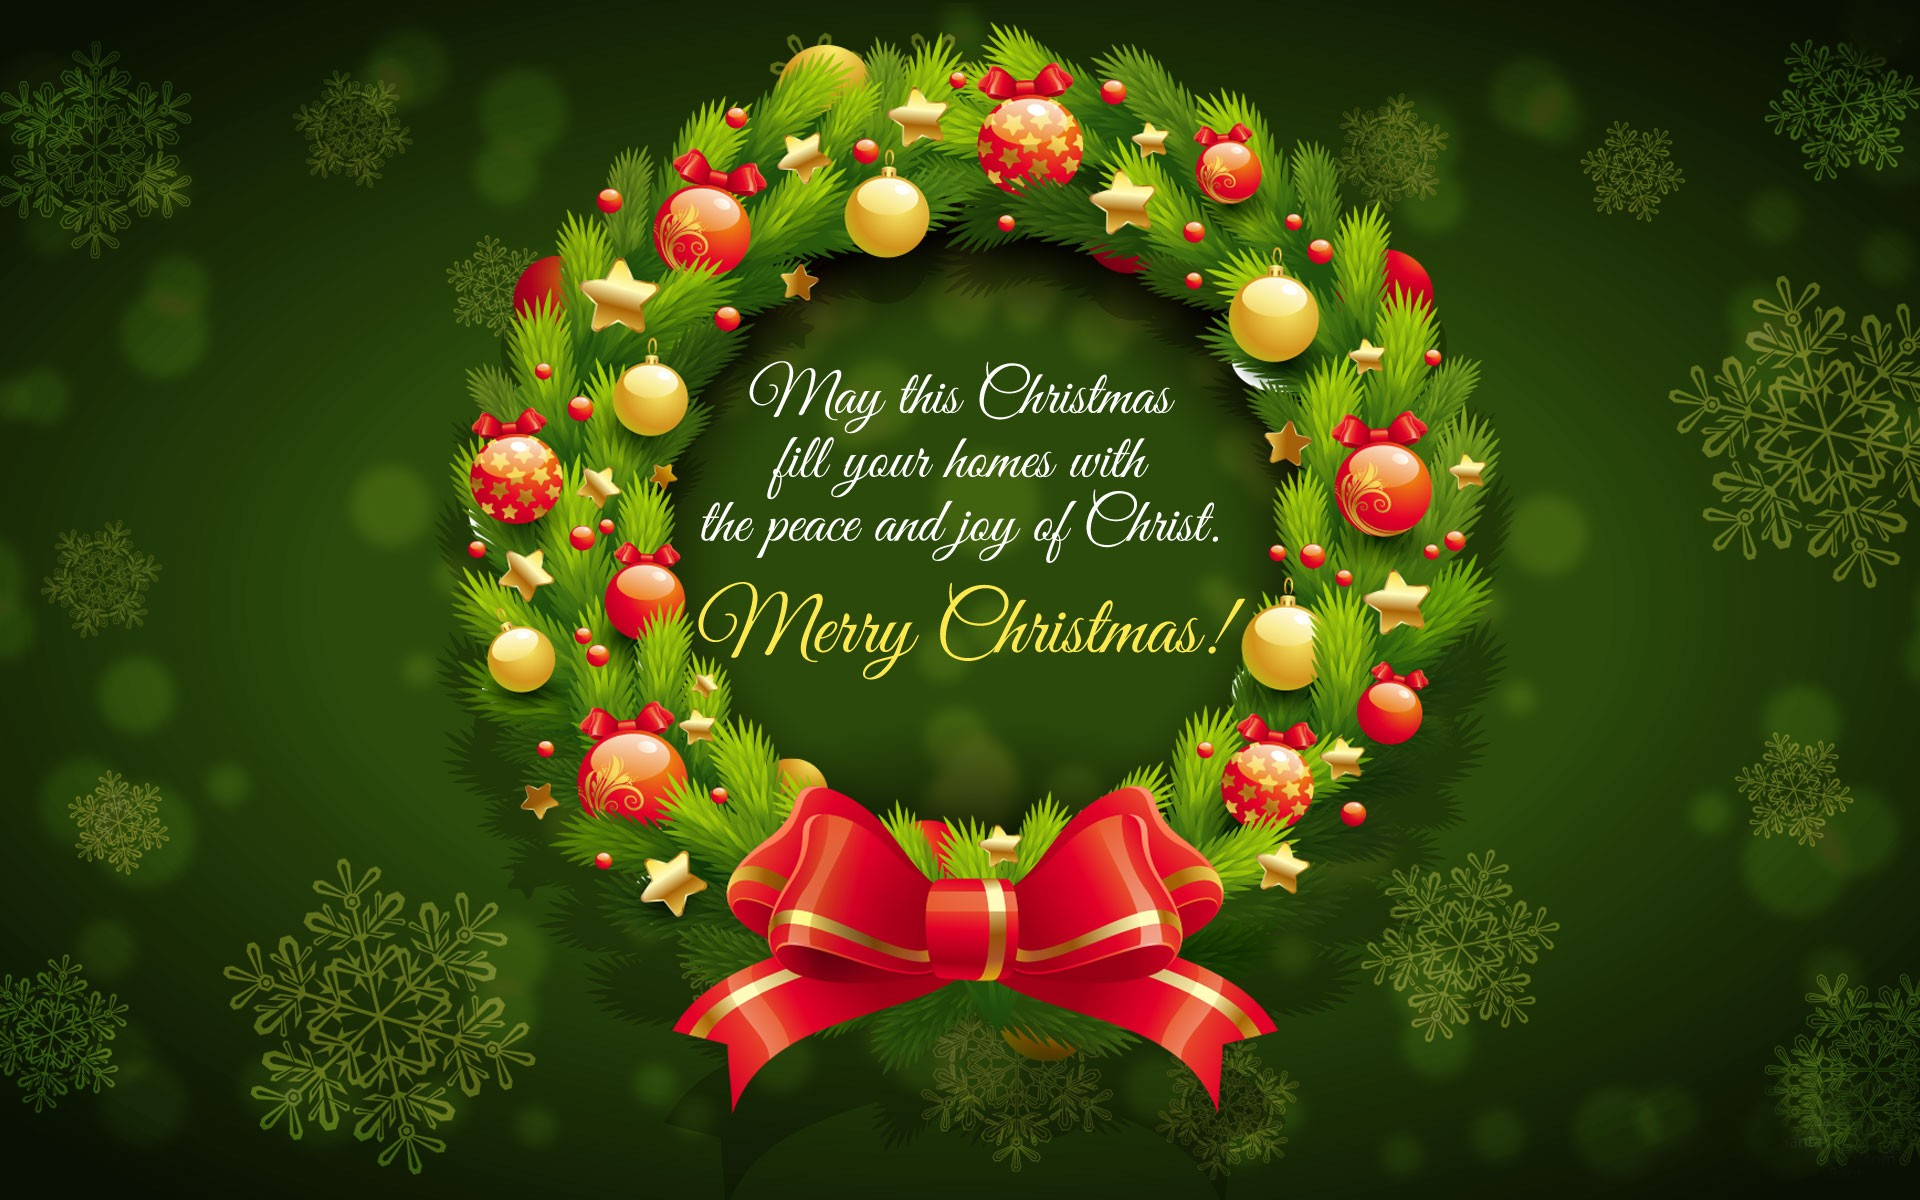 Best Christmas Greetings Collection for 2016